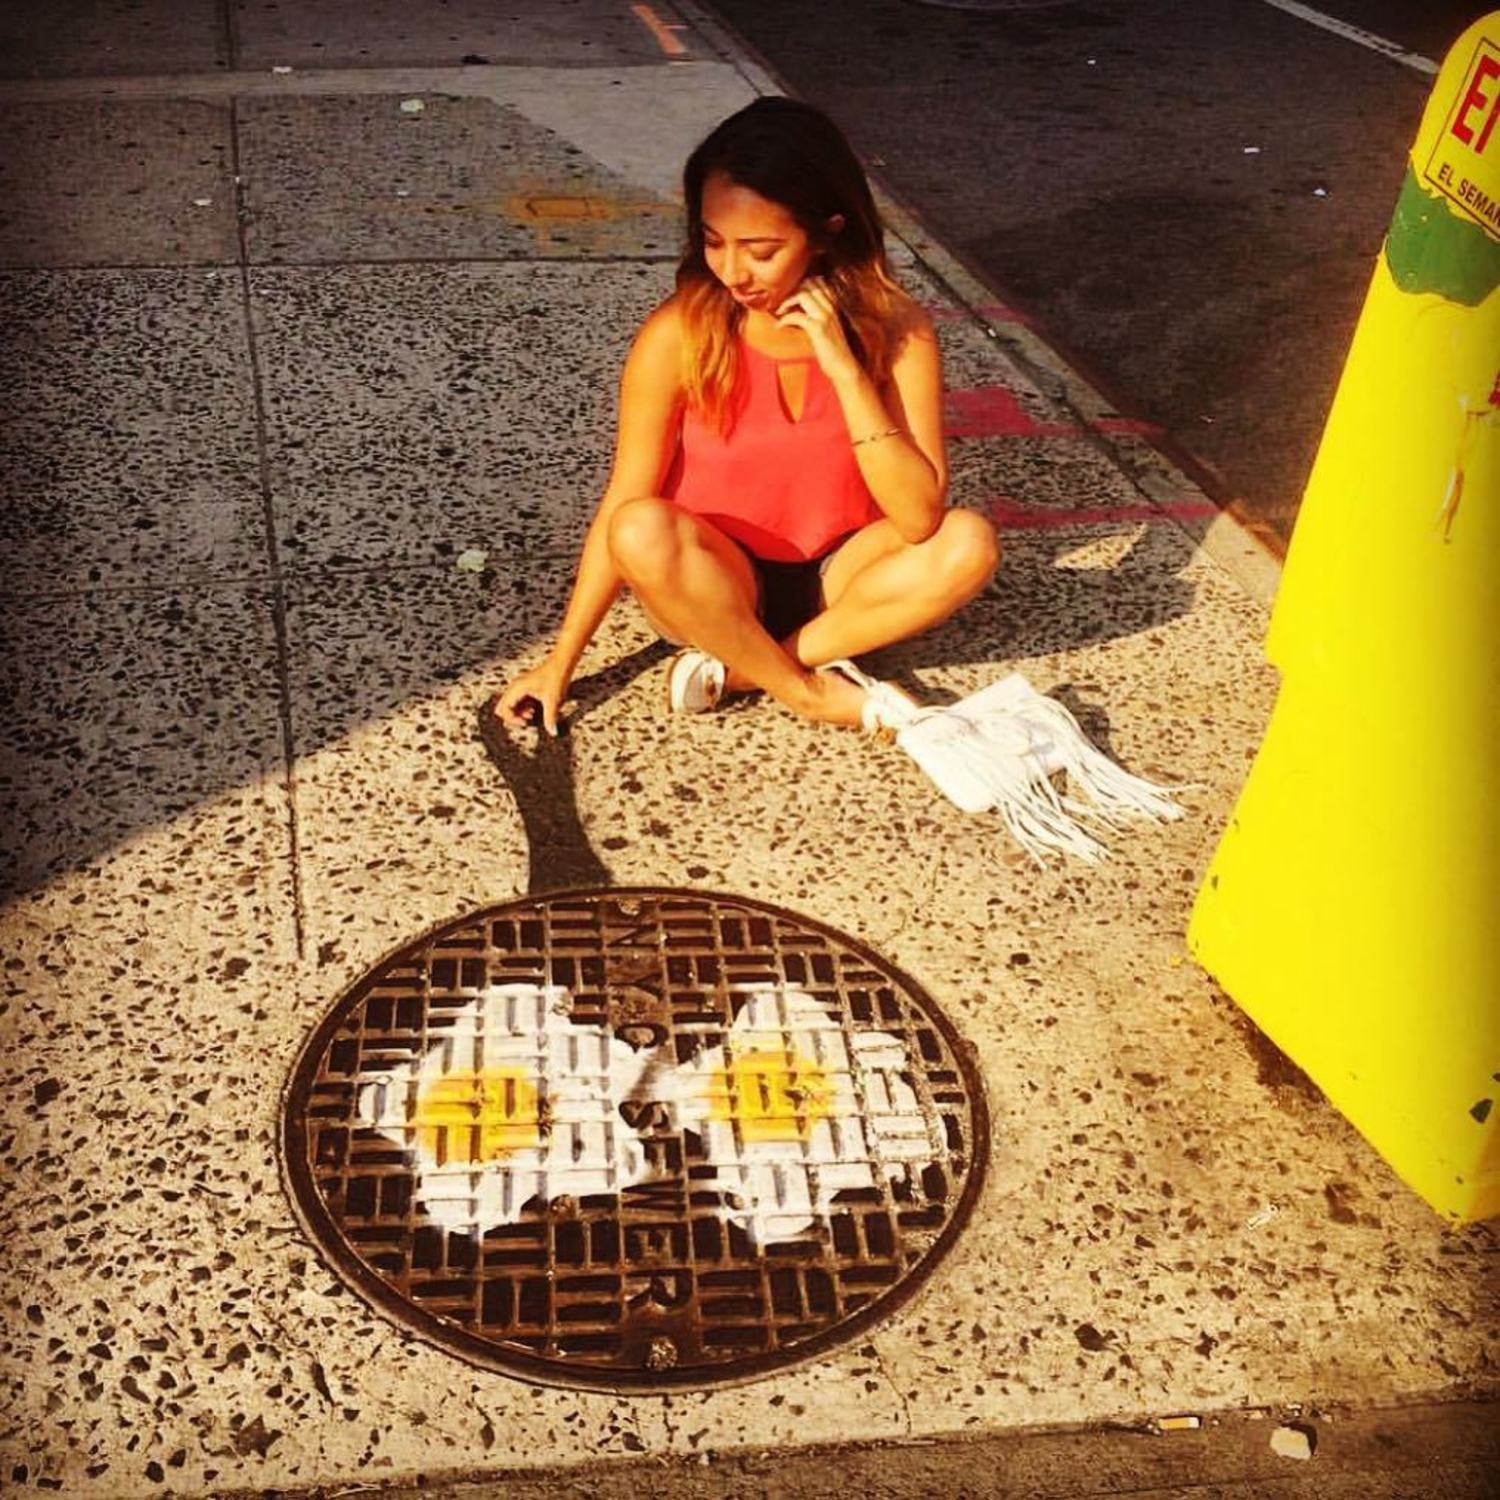 @lynaoh stopping over at #avenuec & #east2ndstreet #loisaida #newyorkcity last  #august for some #eggs #🍳 #eastvillage #nyc #fryeggs #streetart #manhole #stencil #tombobnyc #manholecover #stencilart #tombob #manholecoverart 🍳